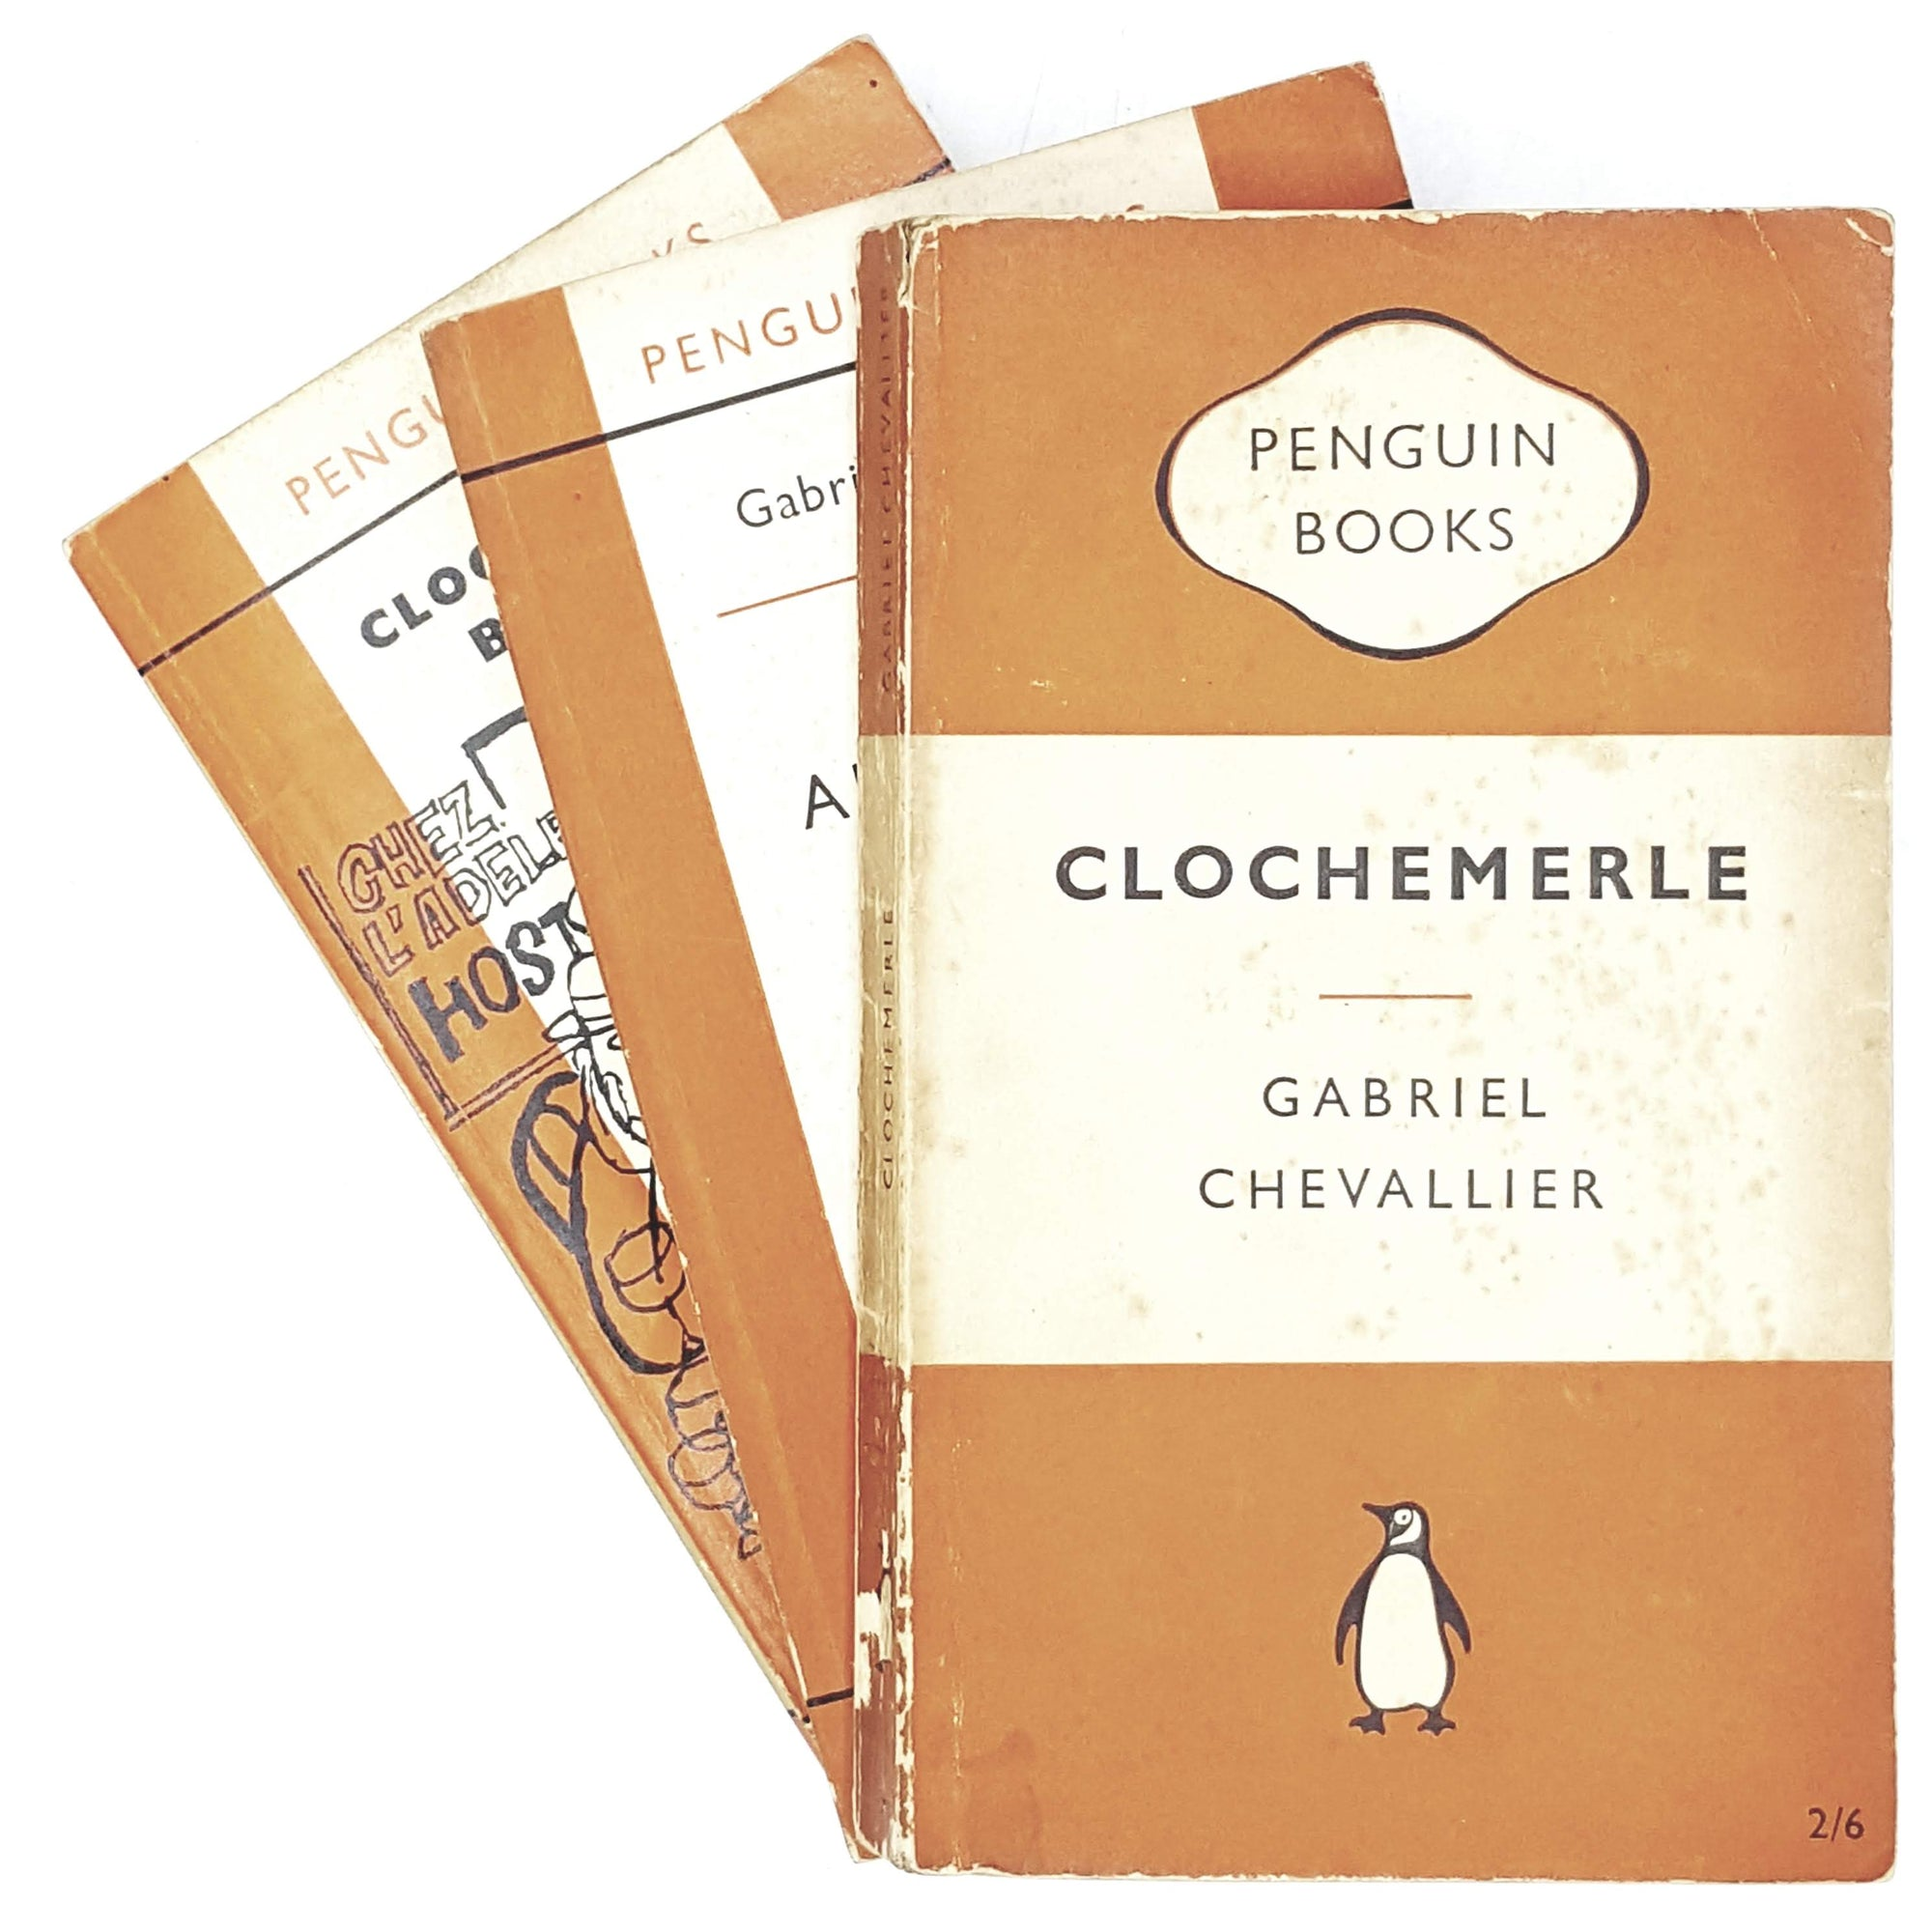 Vintage Penguin Collection of Gabriel Chevallier 1954 - 1961